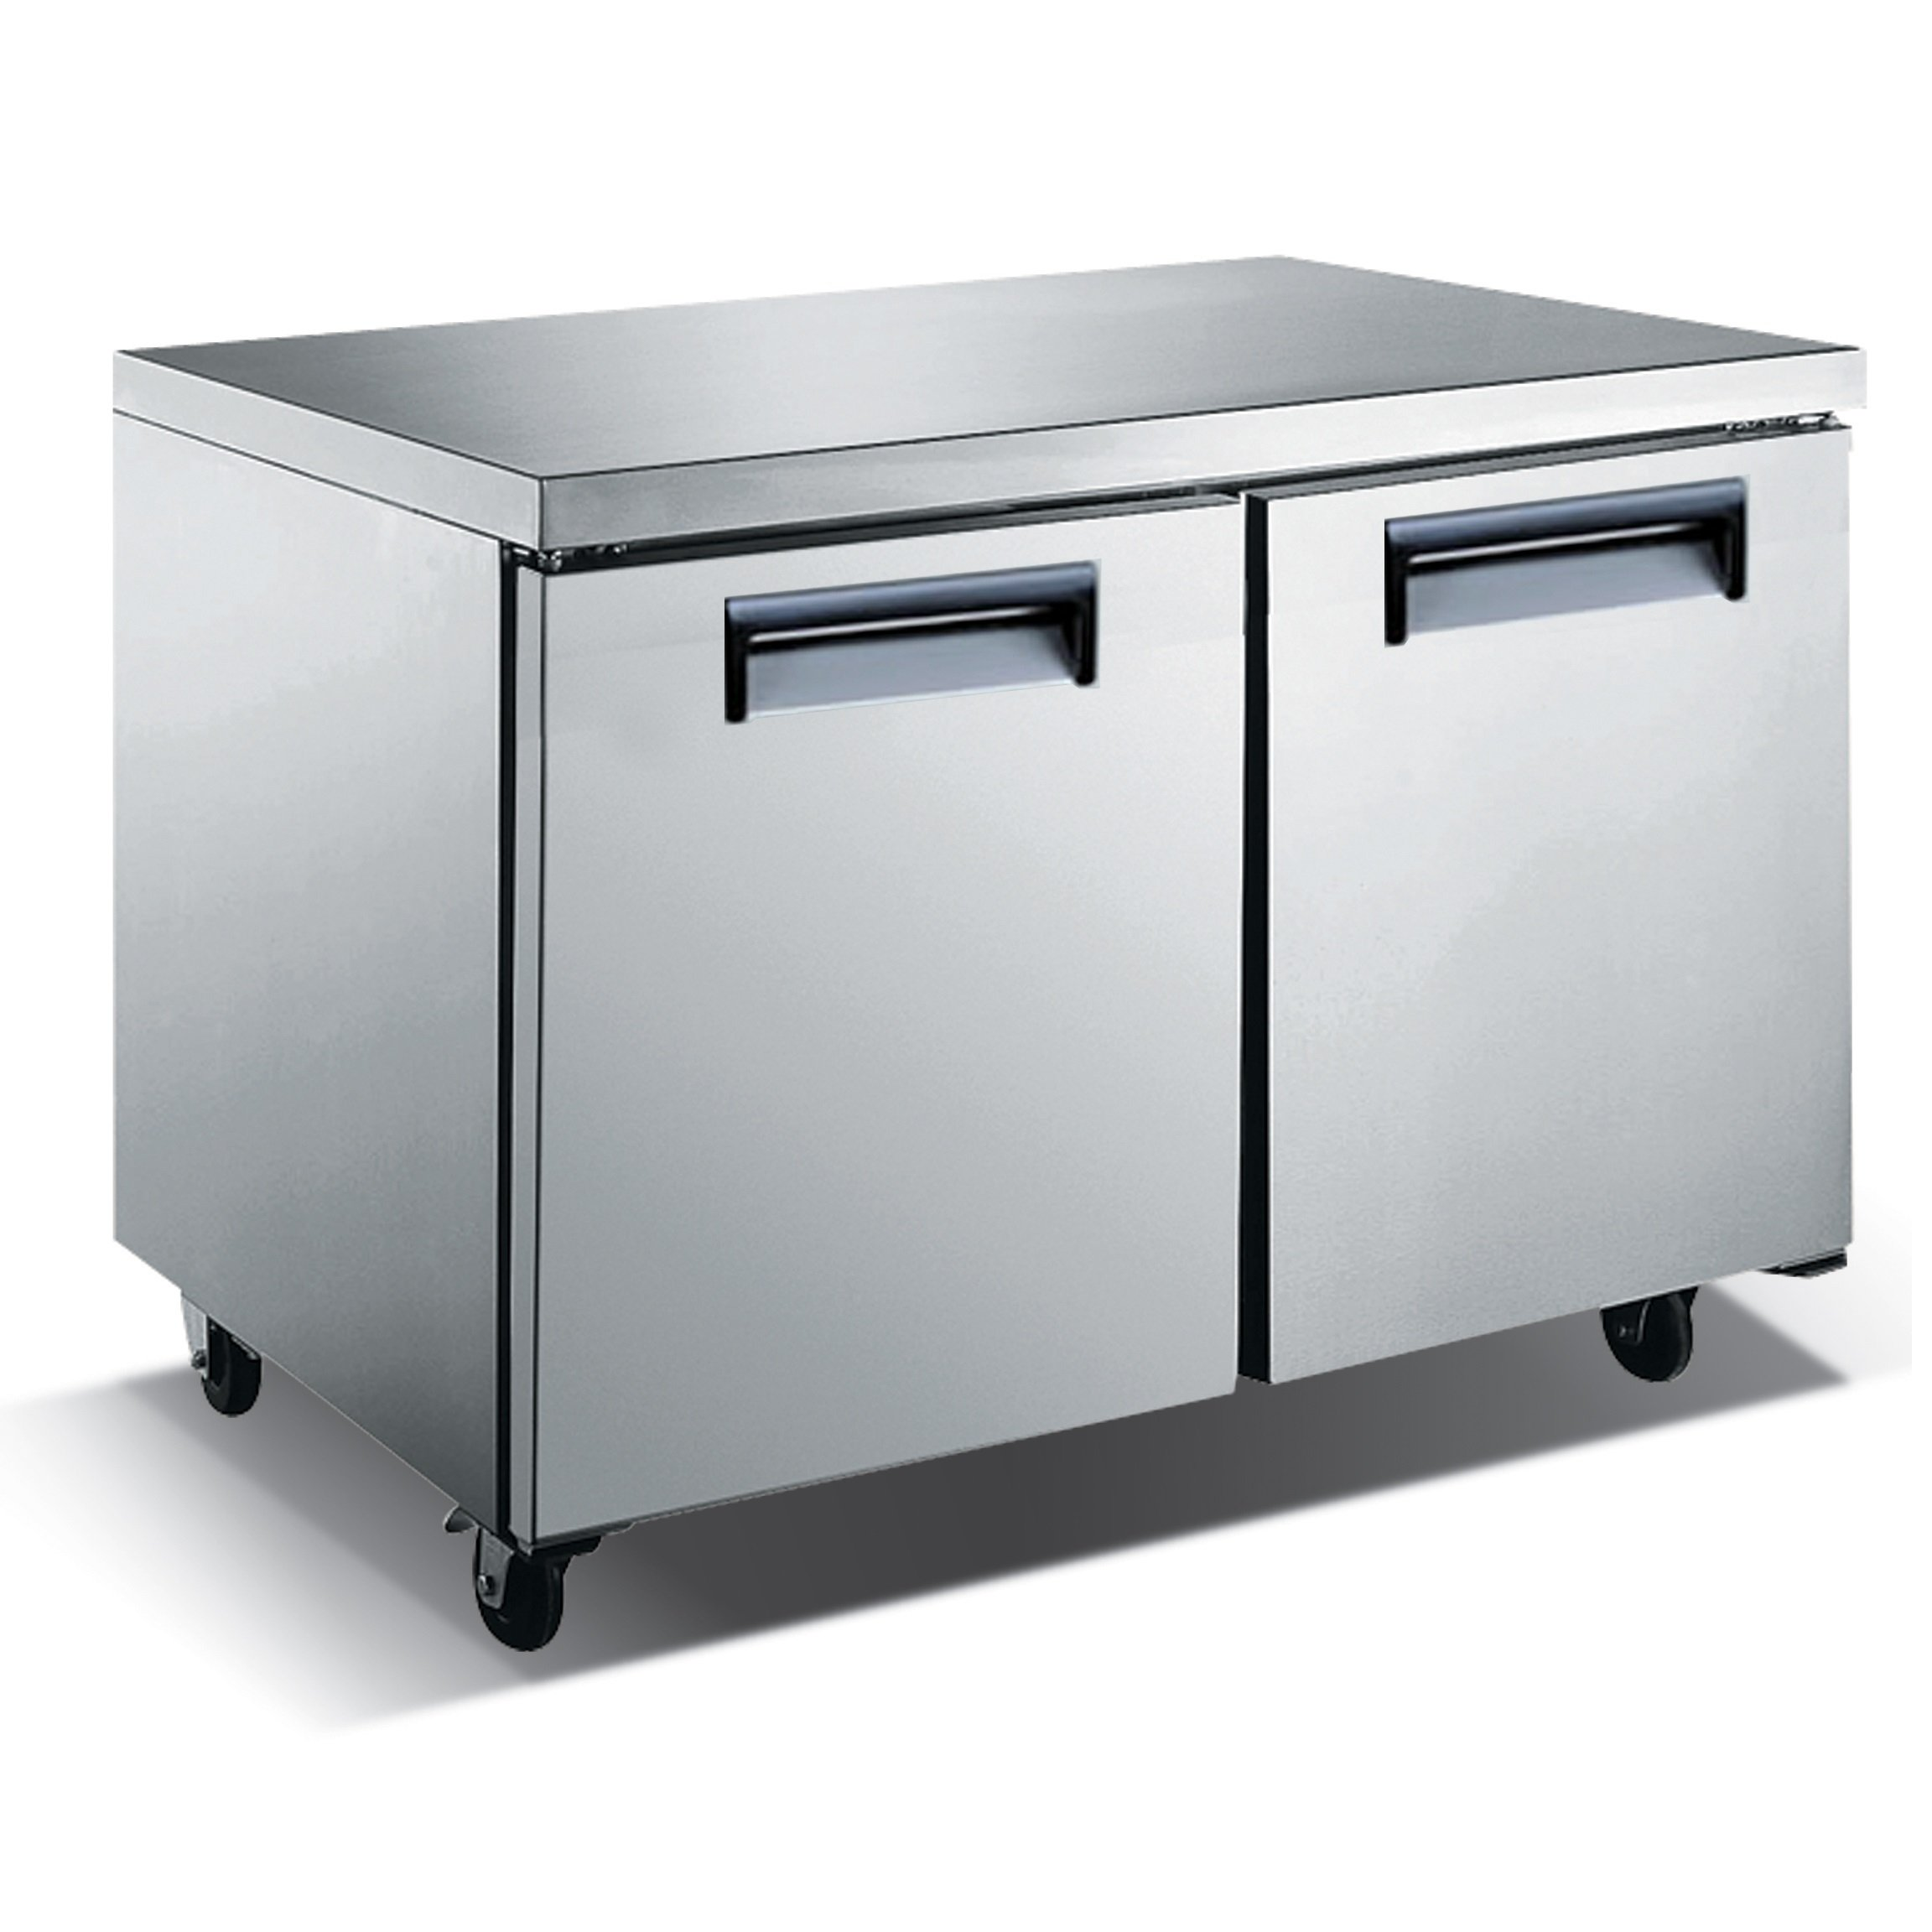 Restaurant Kitchen Refrigerator kitchen monkey undercounter refrigerator 2 door | restaurant equipment